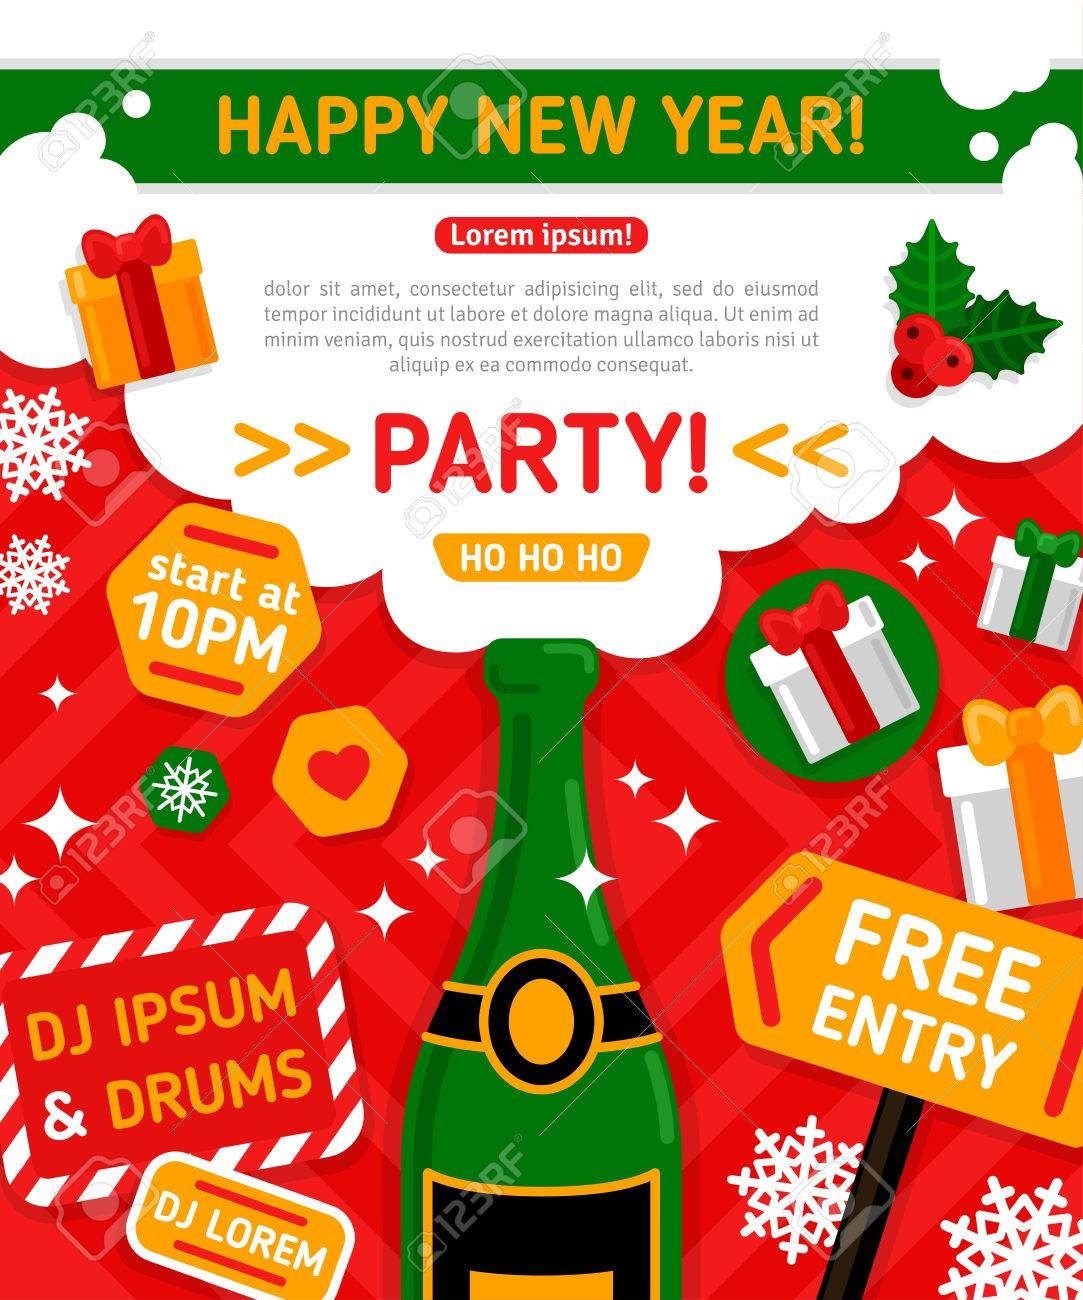 merry christmas and happy new year party invitation card vector illustration champagne bottle with